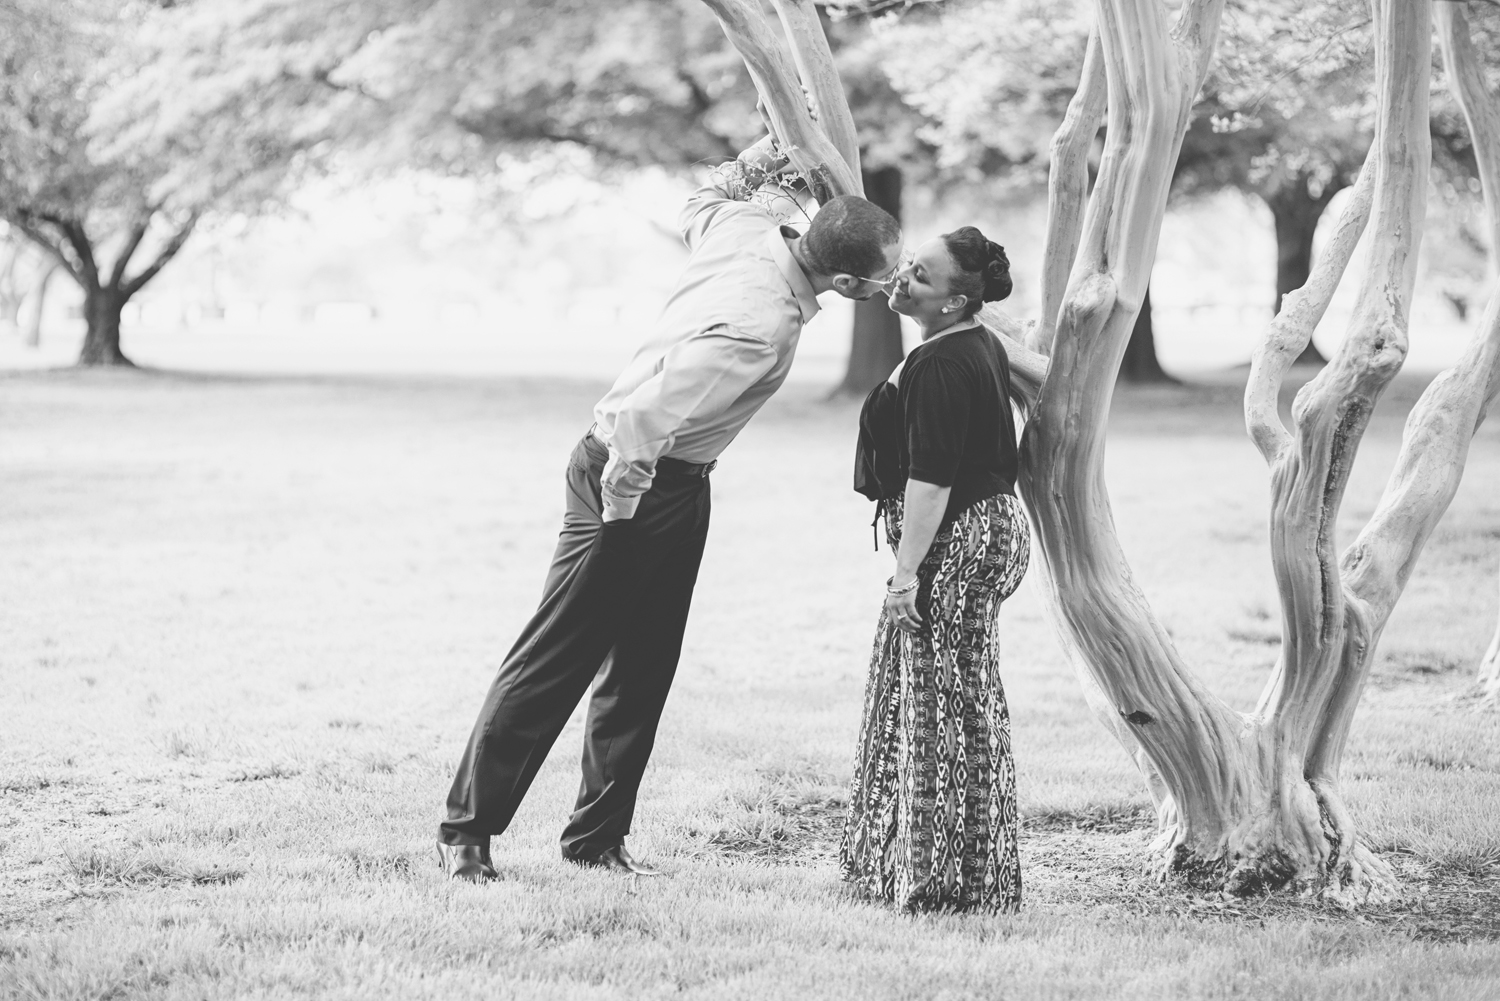 Romantic black and white photo inspiration